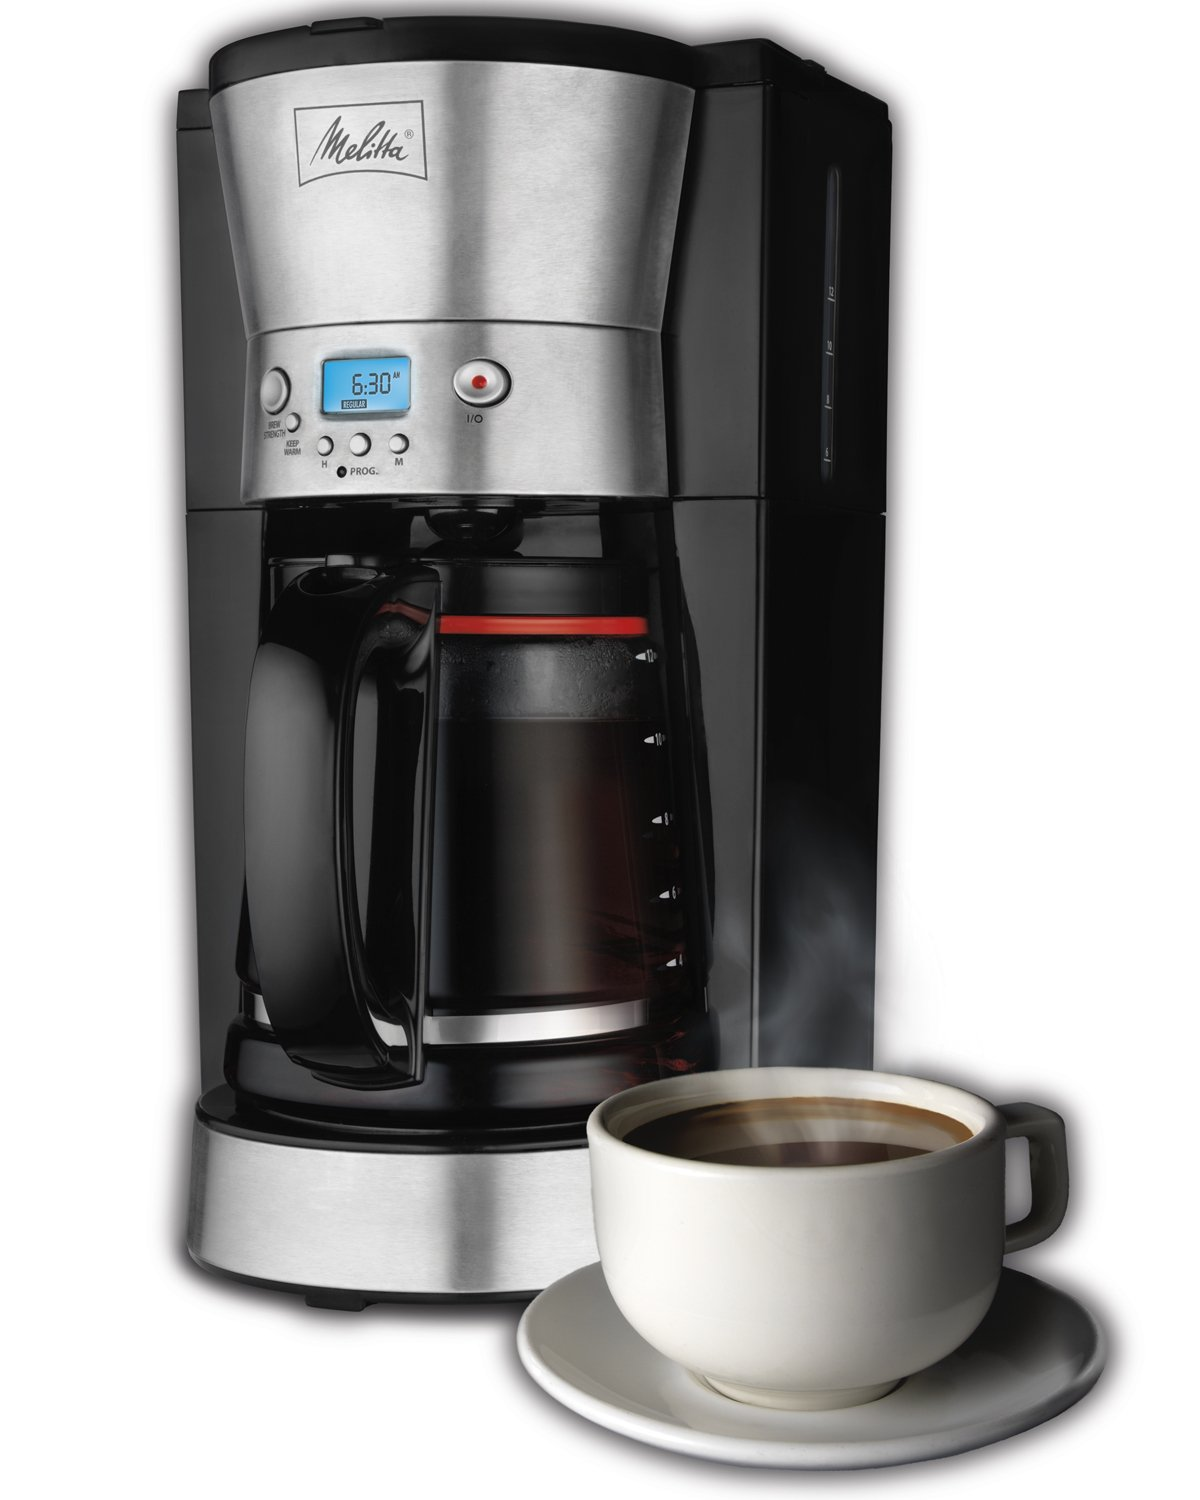 Programmable Coffee Maker Cone Filter : The Best Coffee Makers for The Money - For Every Budget